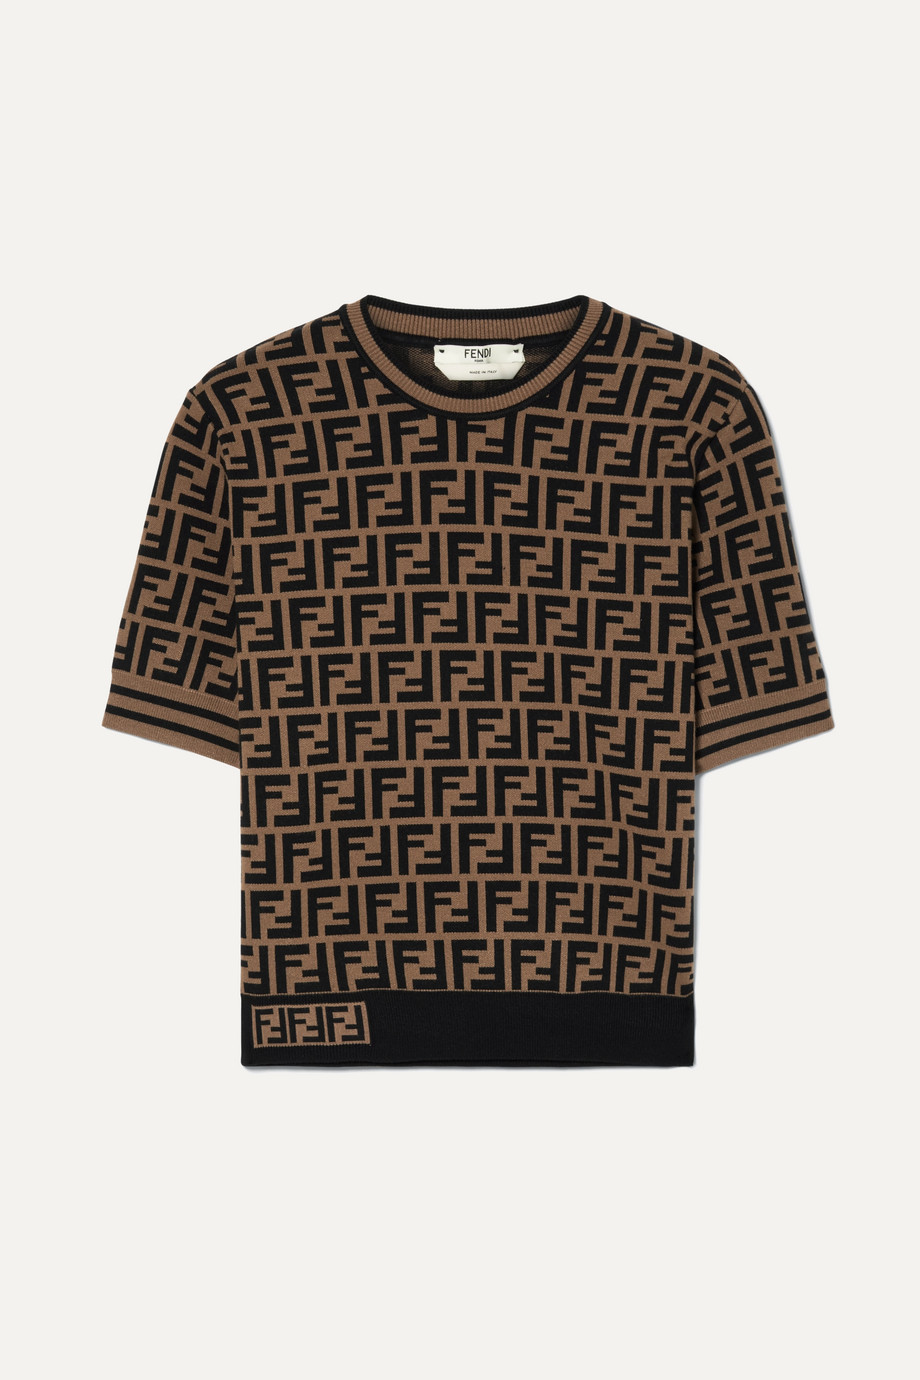 FENDI Jacquard-knit sweater